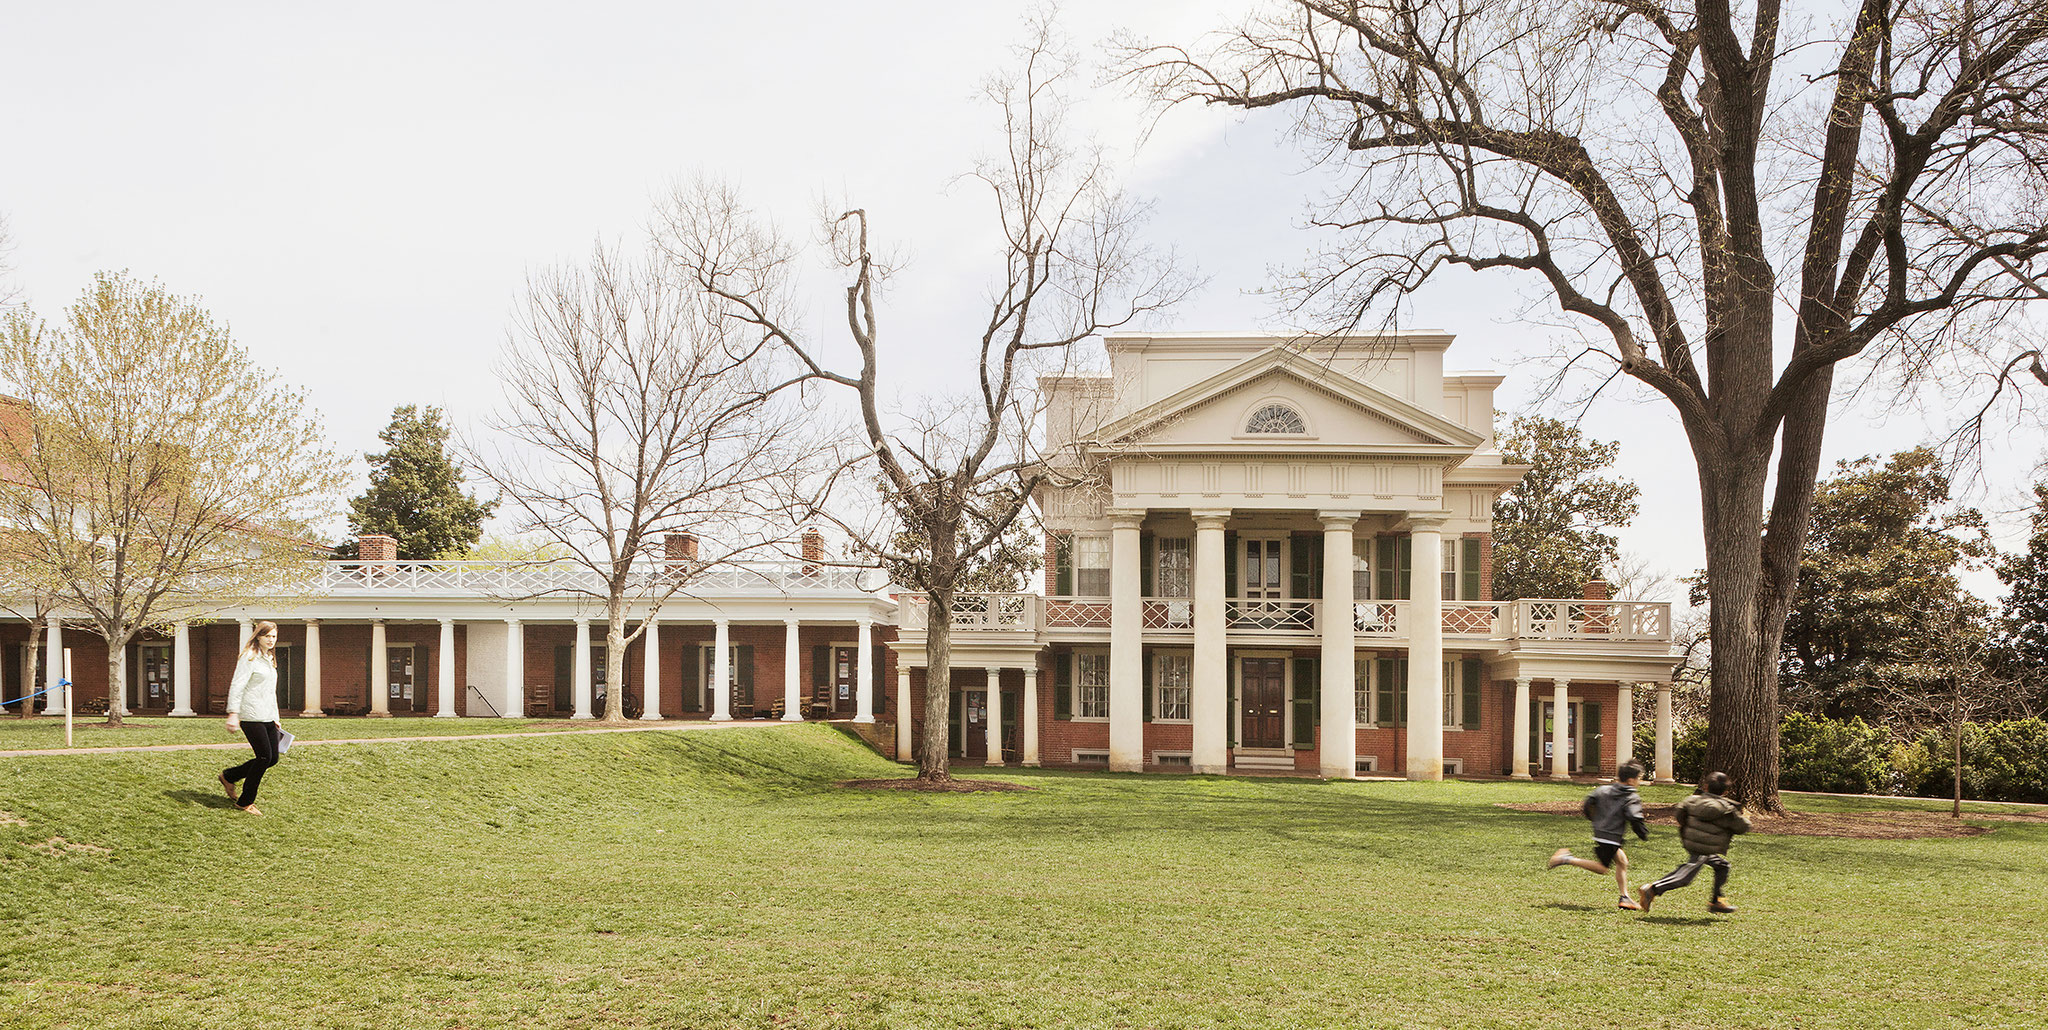 University of Virginia, Charlottesville, Virginia.